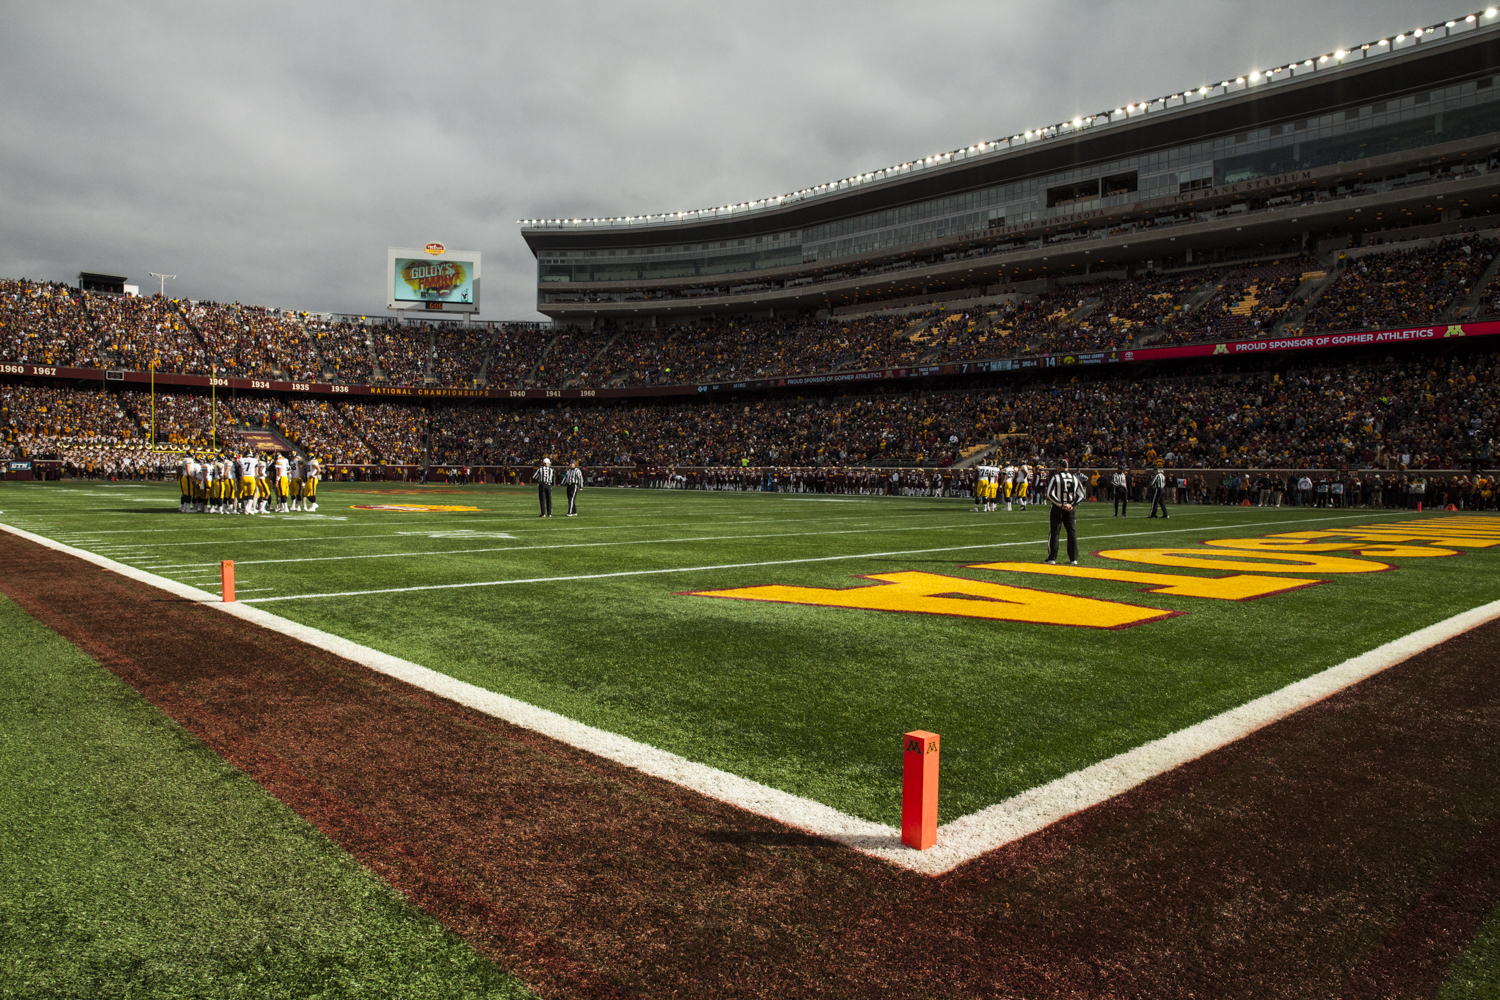 The+Iowa+offense+huddles+during+their+game+against+Minnesota+at+TCF+Bank+Stadium+on+Saturday%2C+October+6%2C+2018.+The+Hawkeyes+defeated+the+Golden+Gophers+48-31.